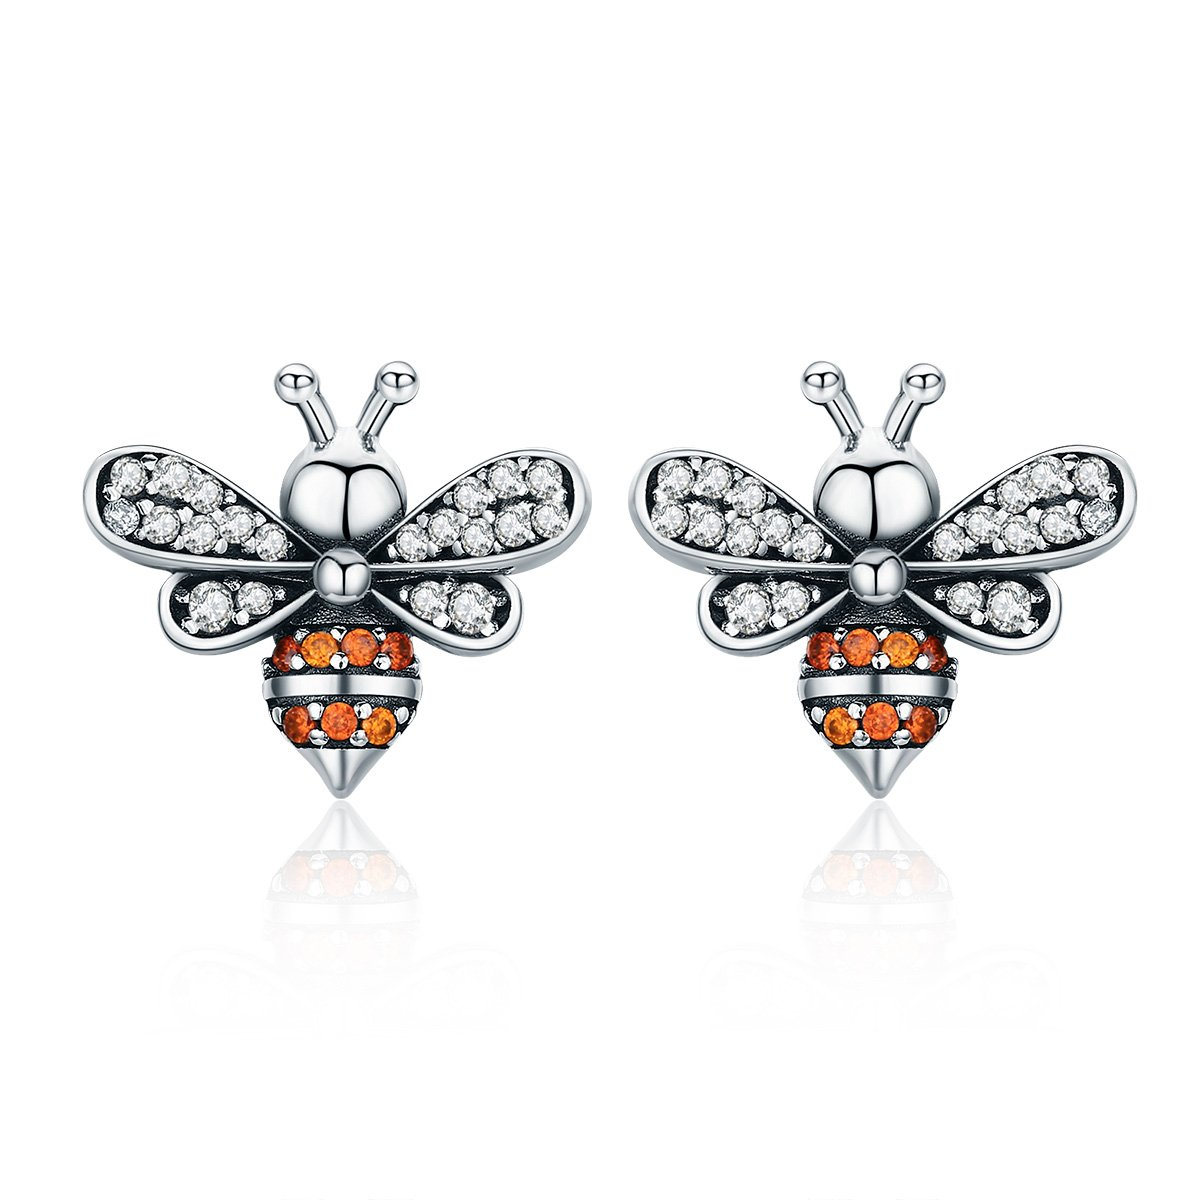 The Kiss Bee Story Clear CZ Exquisite 925 Sterling Silver Stud Earrings